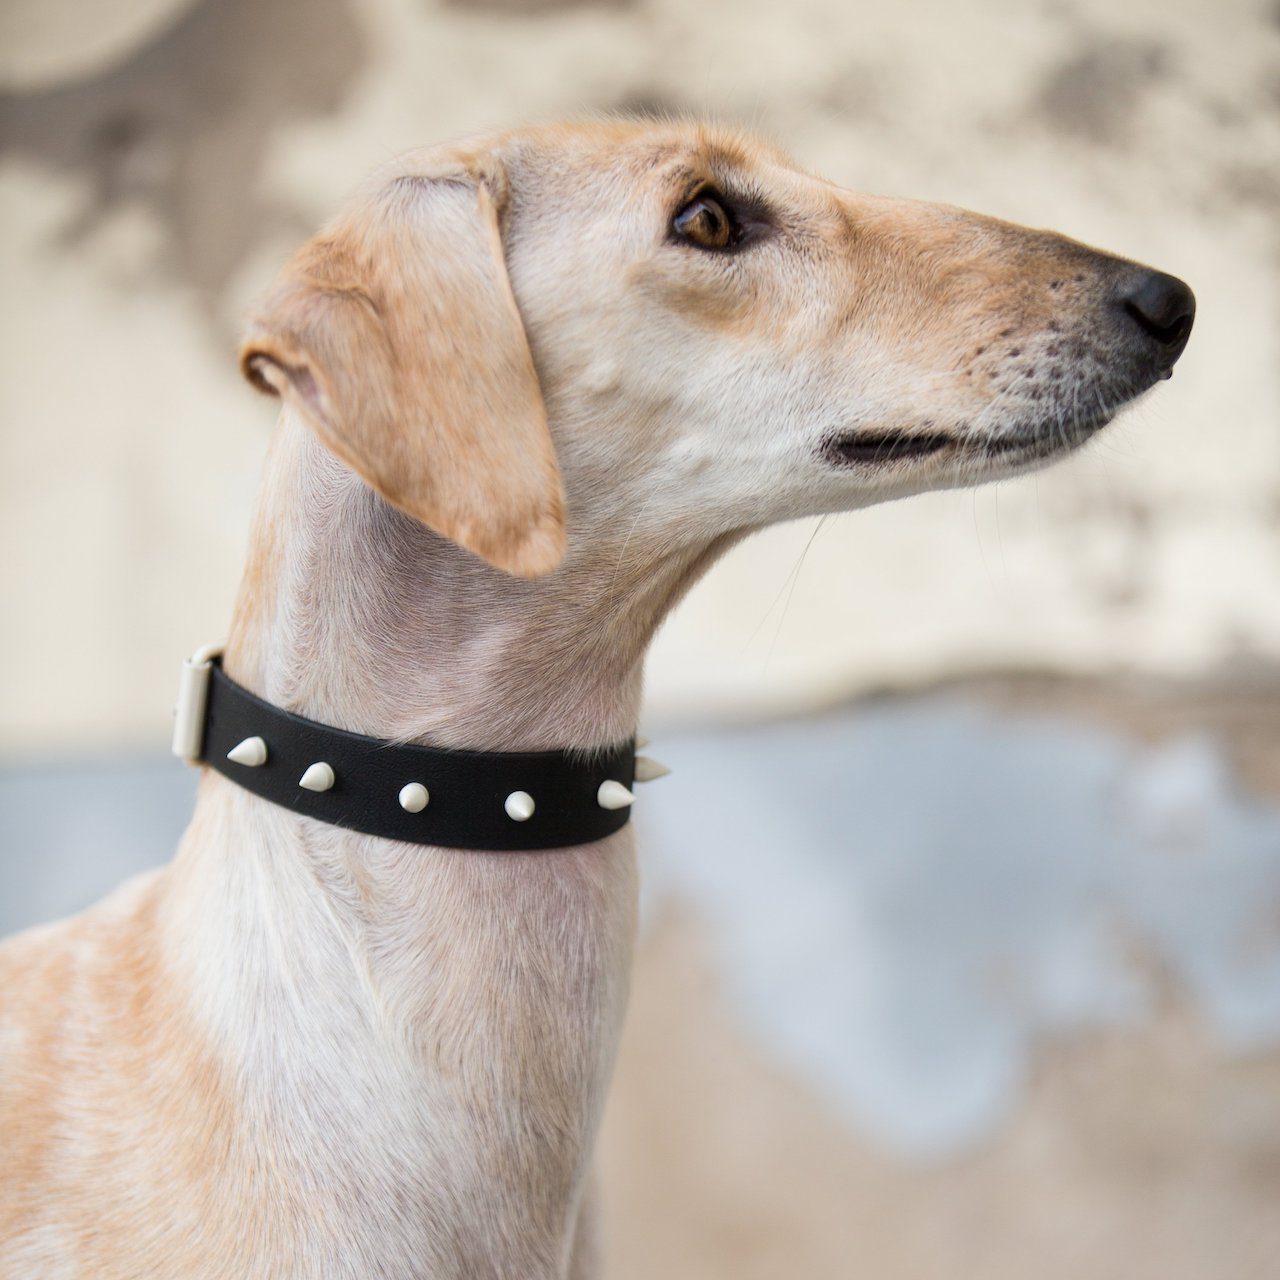 Vegan Spiked Dog Collars from Sighthound Squad